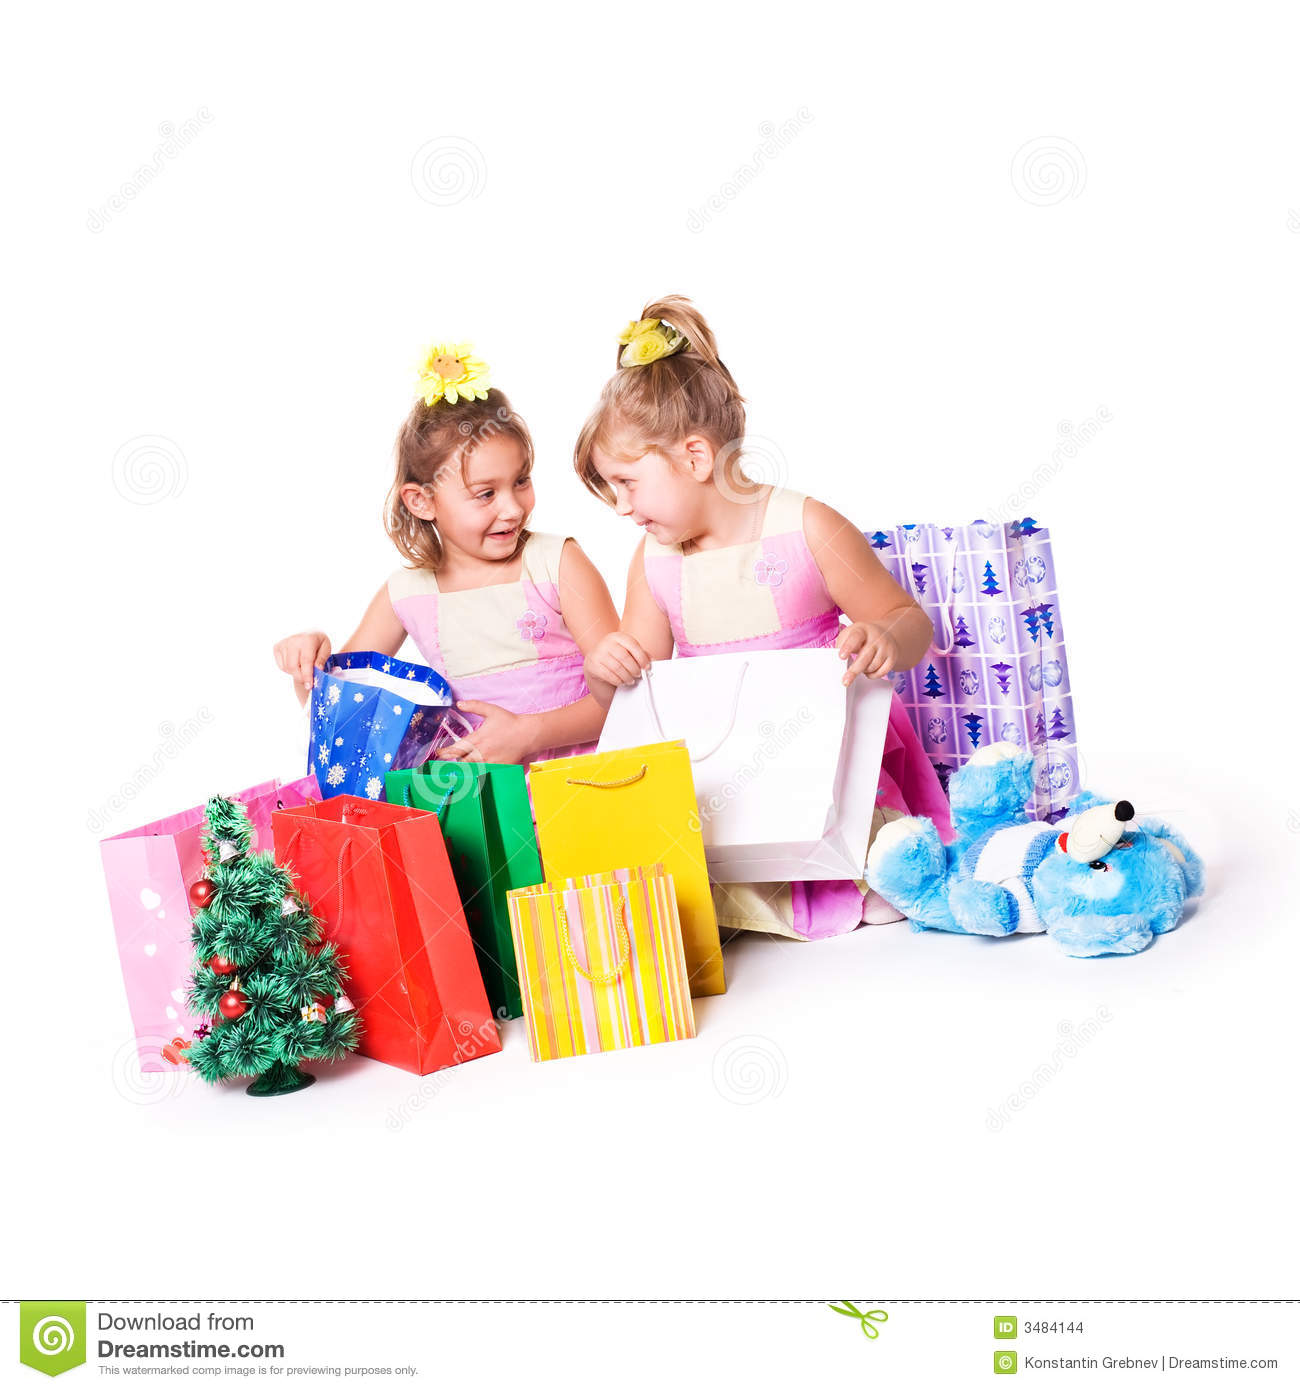 Https Www Dreamstime Com Stock Images Kids Shopping Image3484144